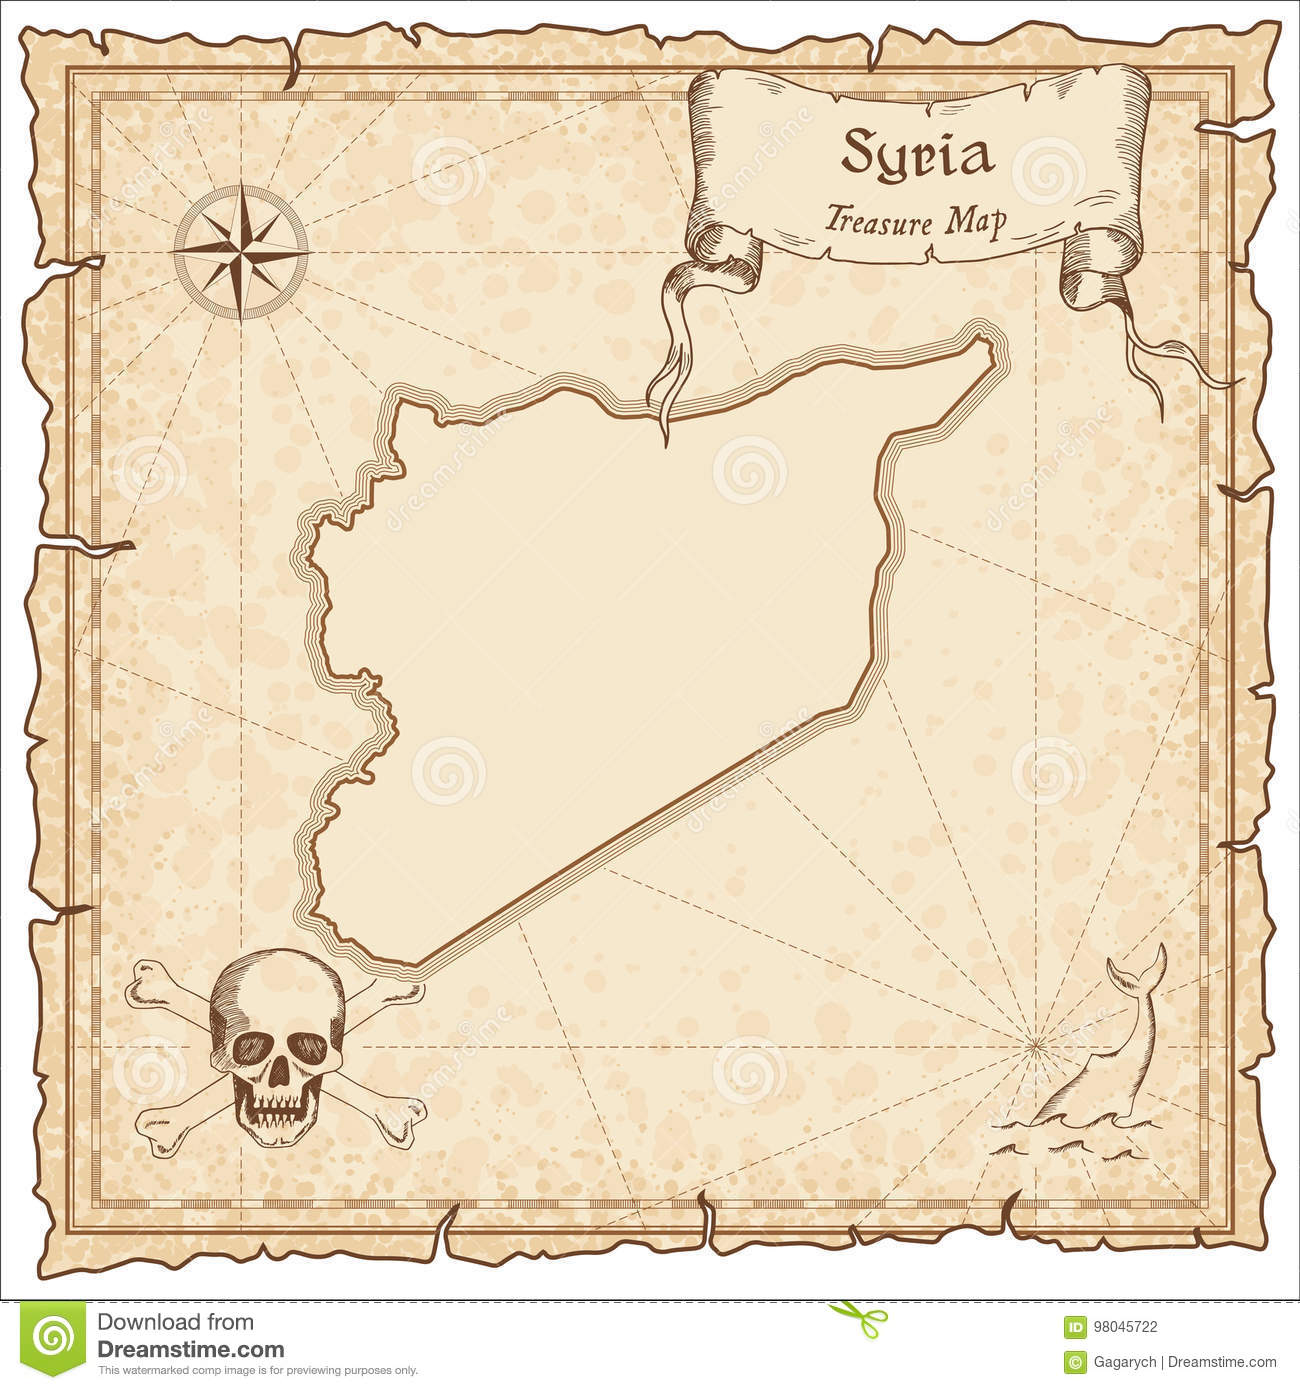 Syrian Arab Republic Old Pirate Map Sepia Engraved Template Of Treasure Stylized On Vintage Paper